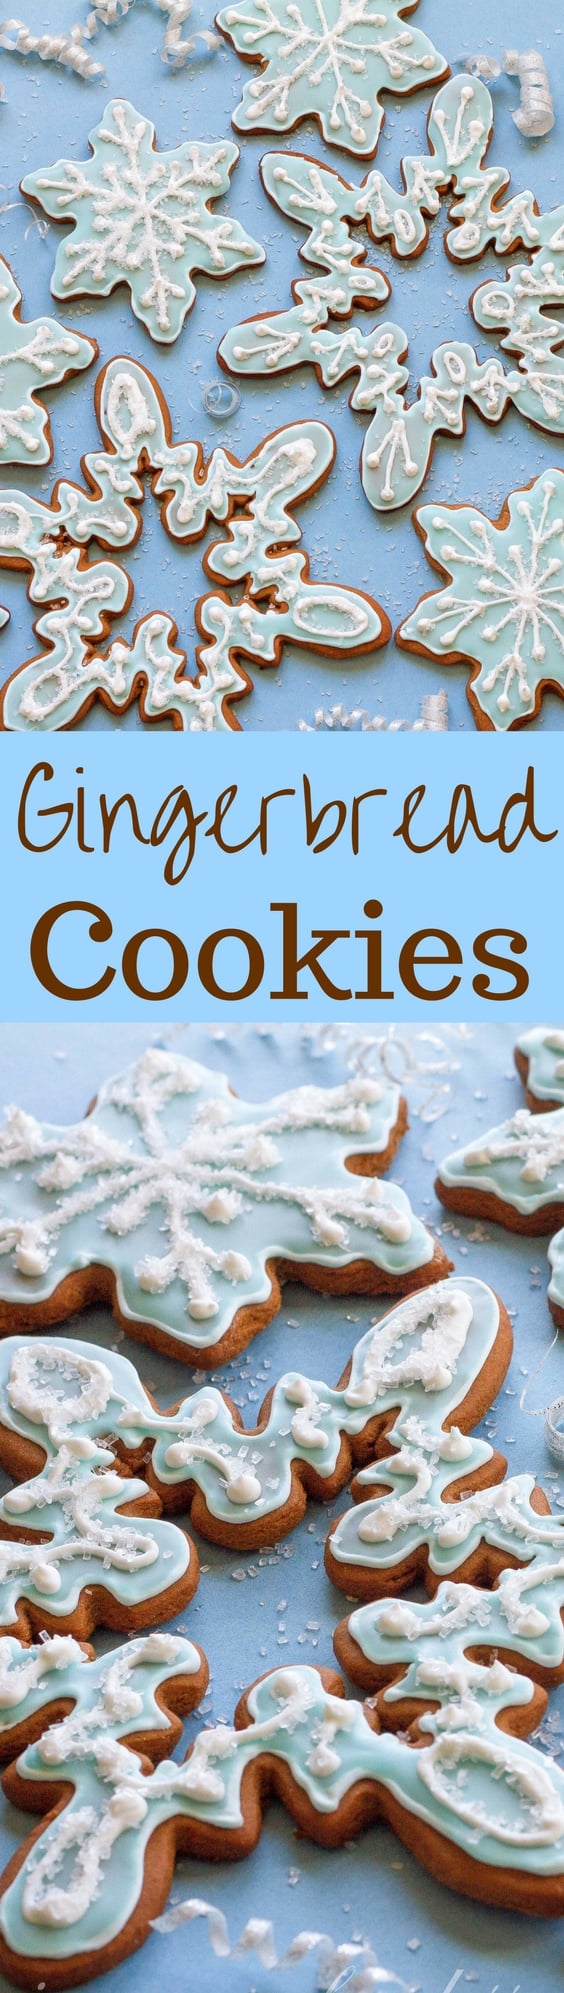 Classic Gingerbread Cookies in a festive snowflake design.  A tasty treat for the holidays!  www.savingdessert.com